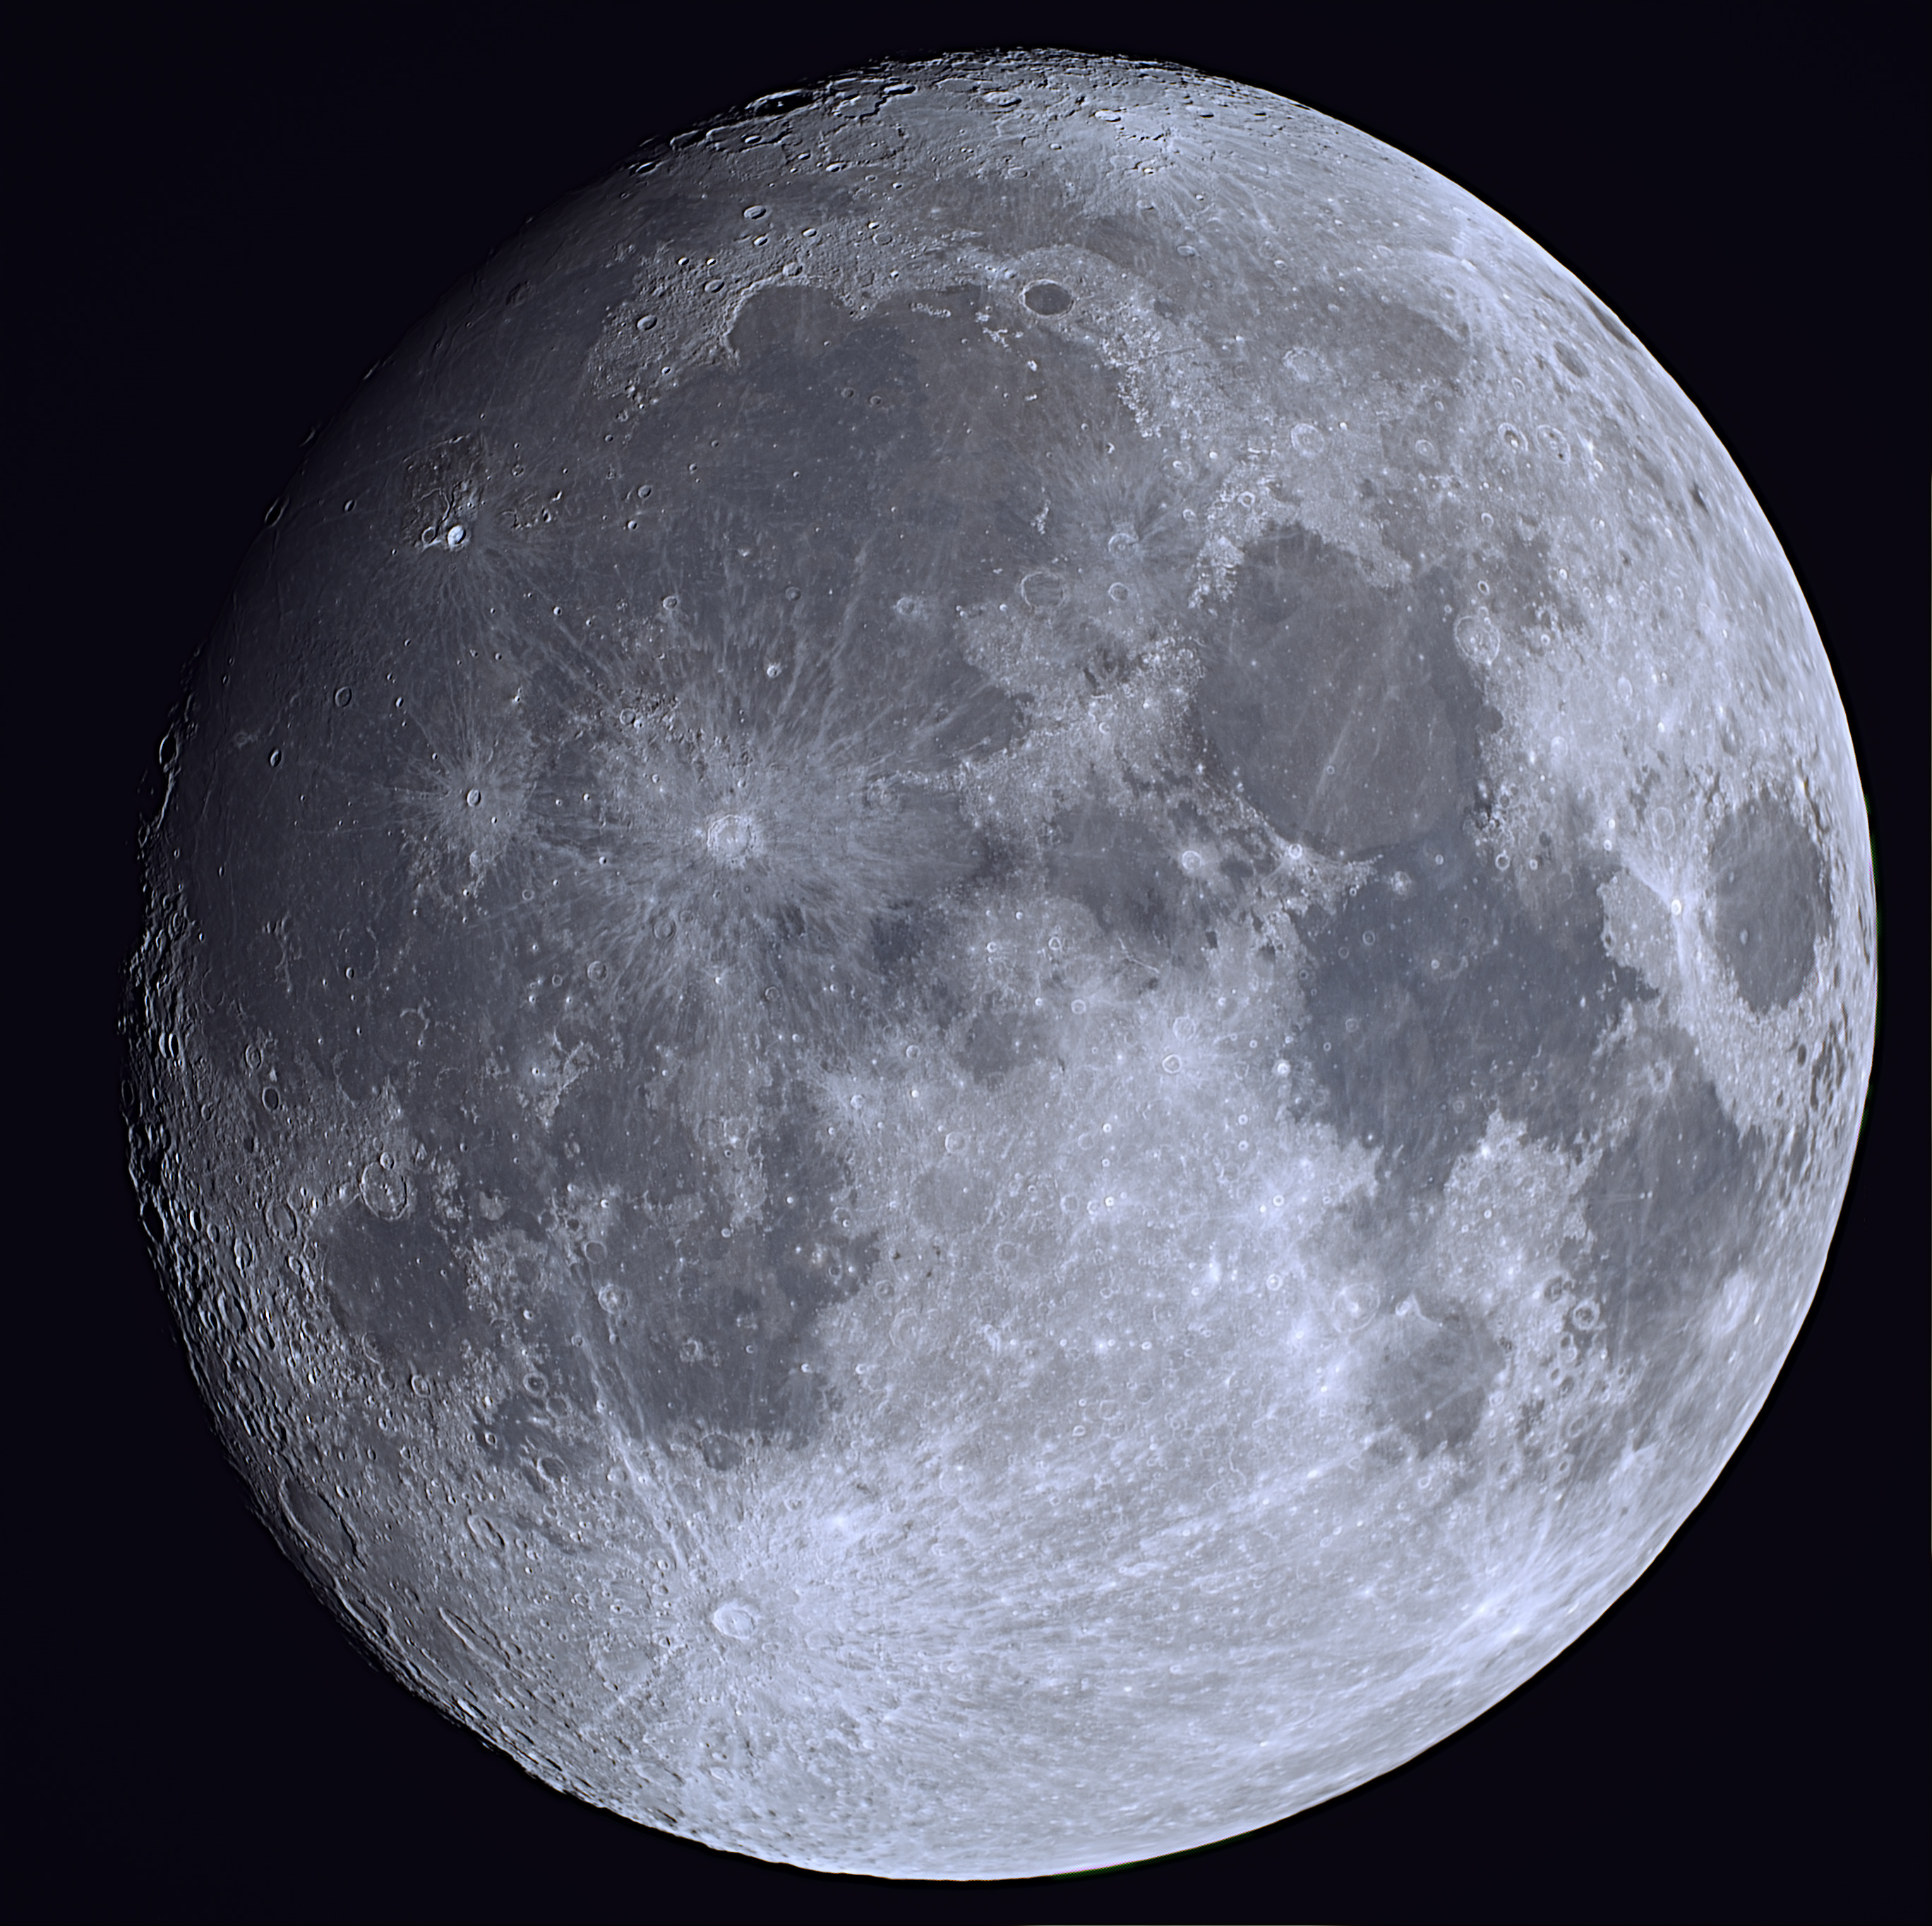 large.CropMoon23_11_25_AS_P67_l3_ap325.jpg.9c610c24eb05789bd9bd462b99b0f804.jpg